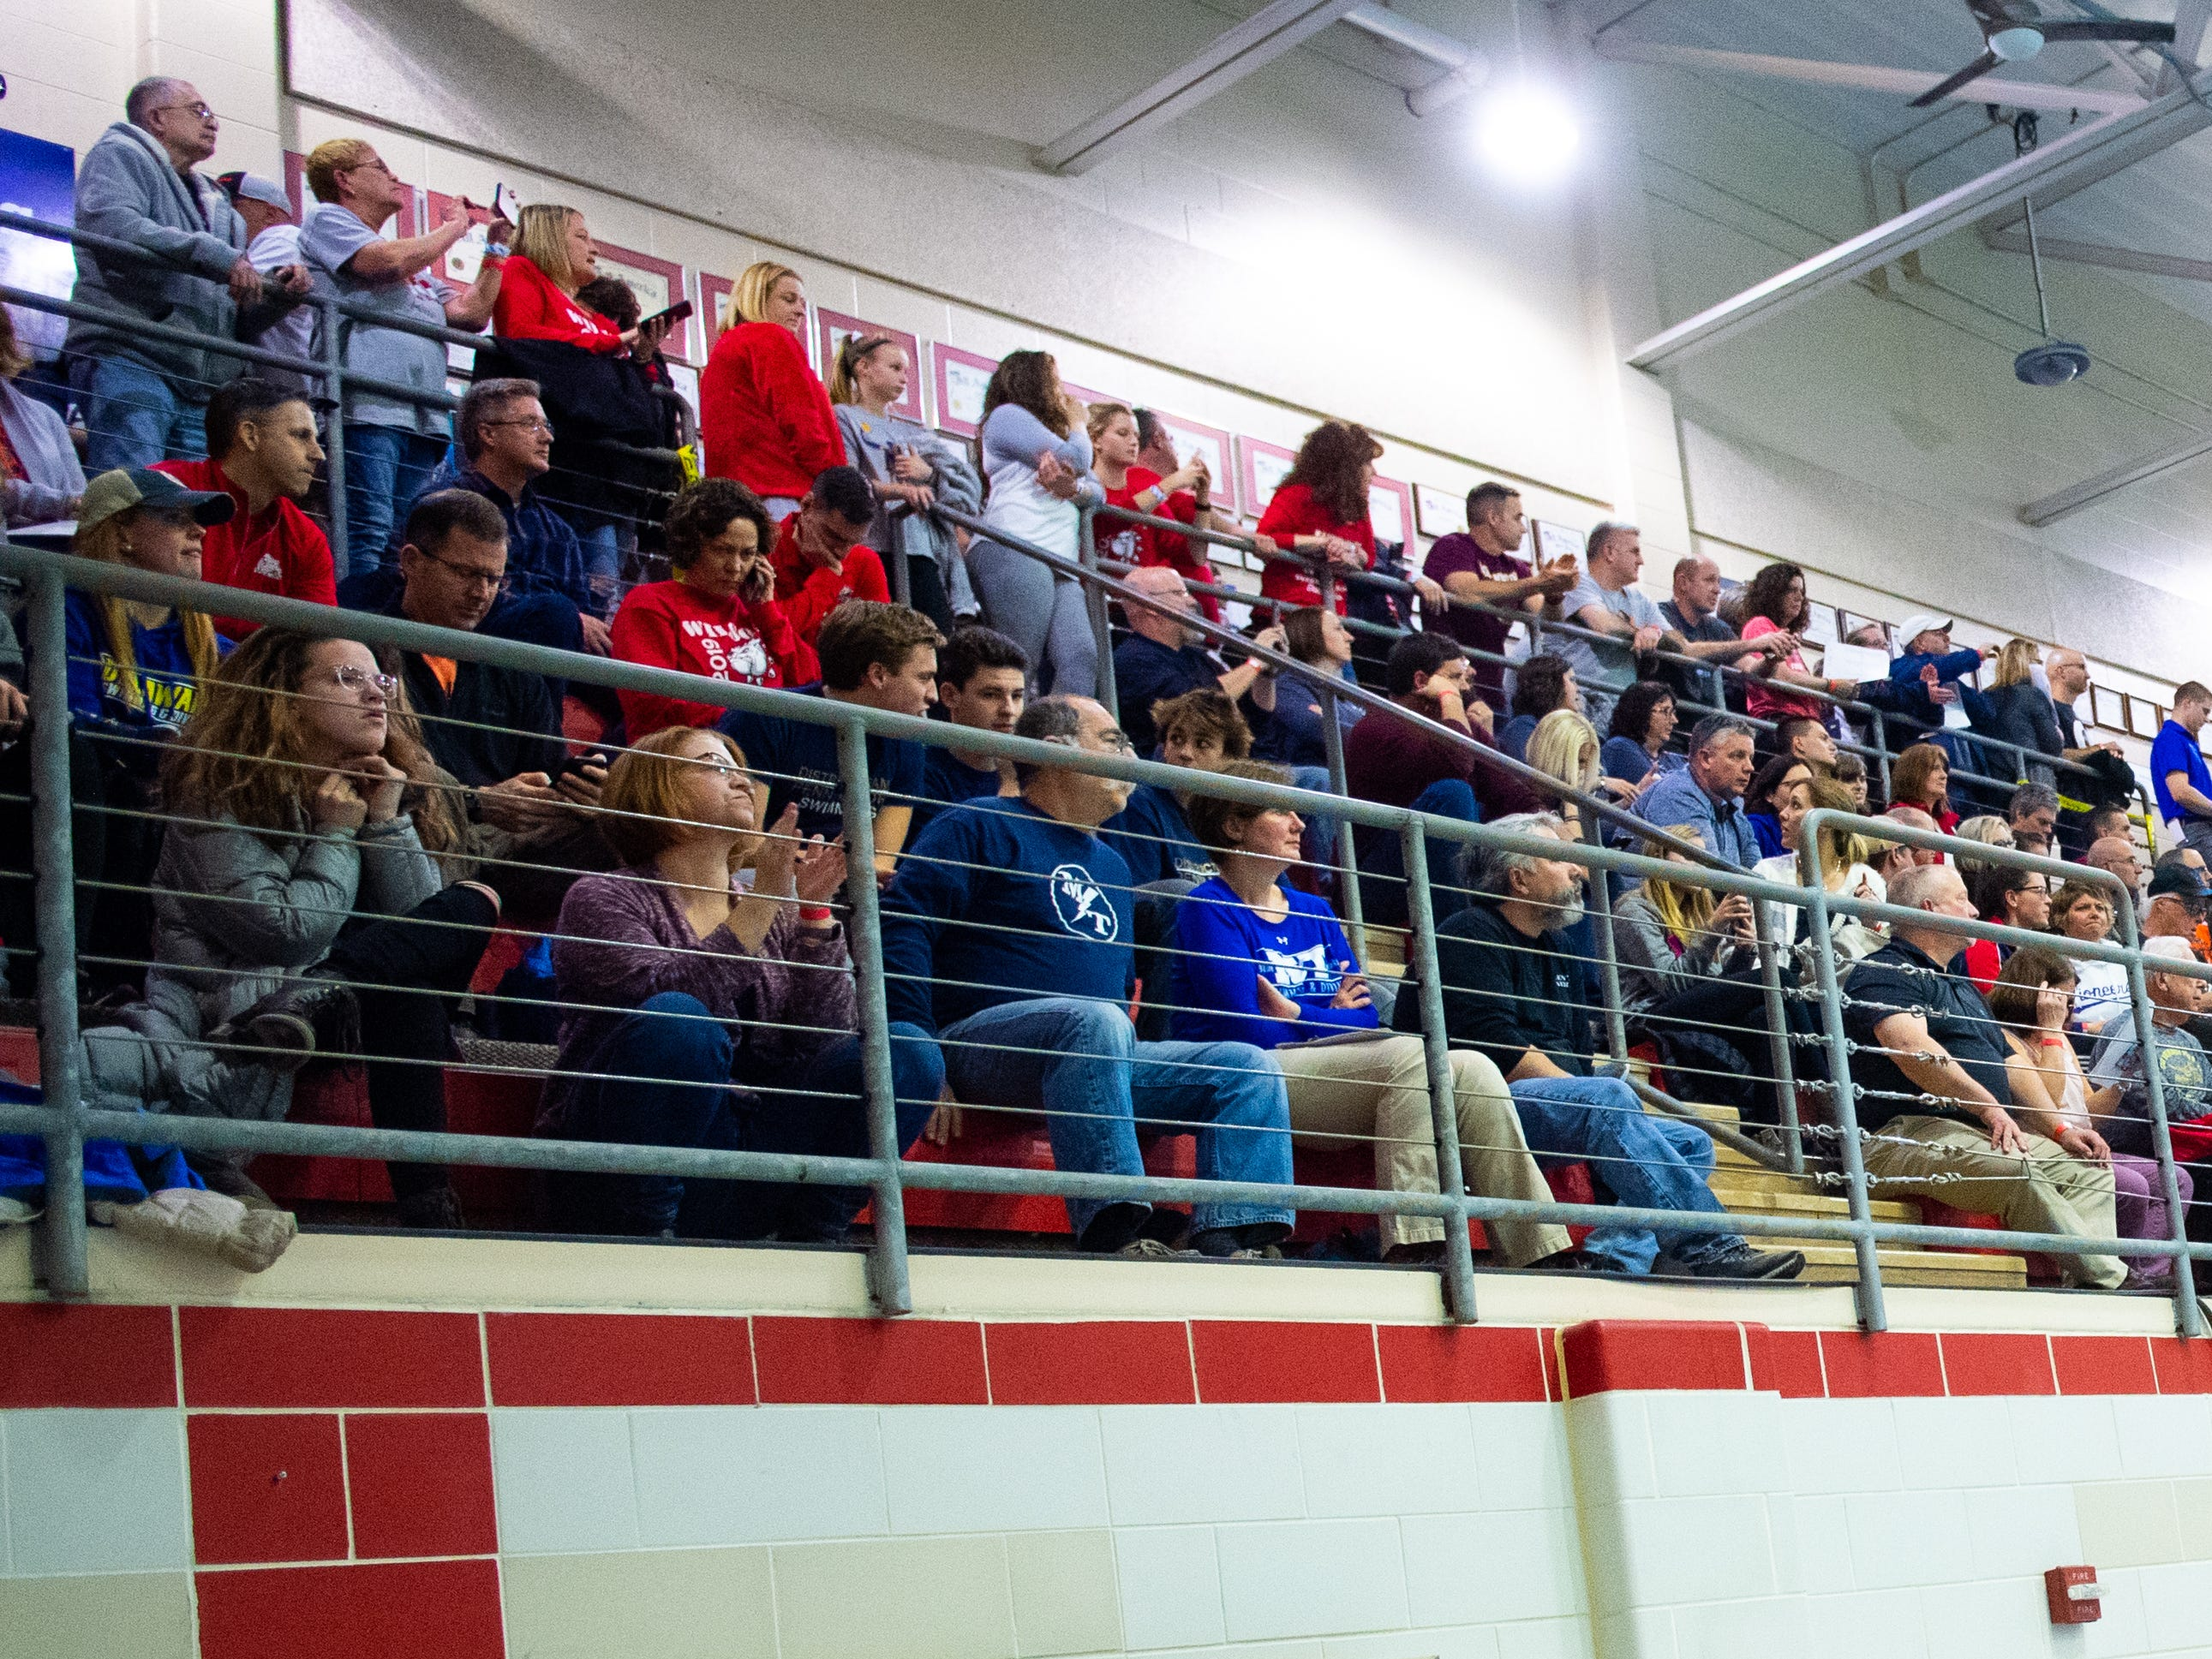 Friends and family pile onto the upper deck of the natatorium during the PIAA District 3 Championships, March 1, 2019 at Cumberland Valley High School.